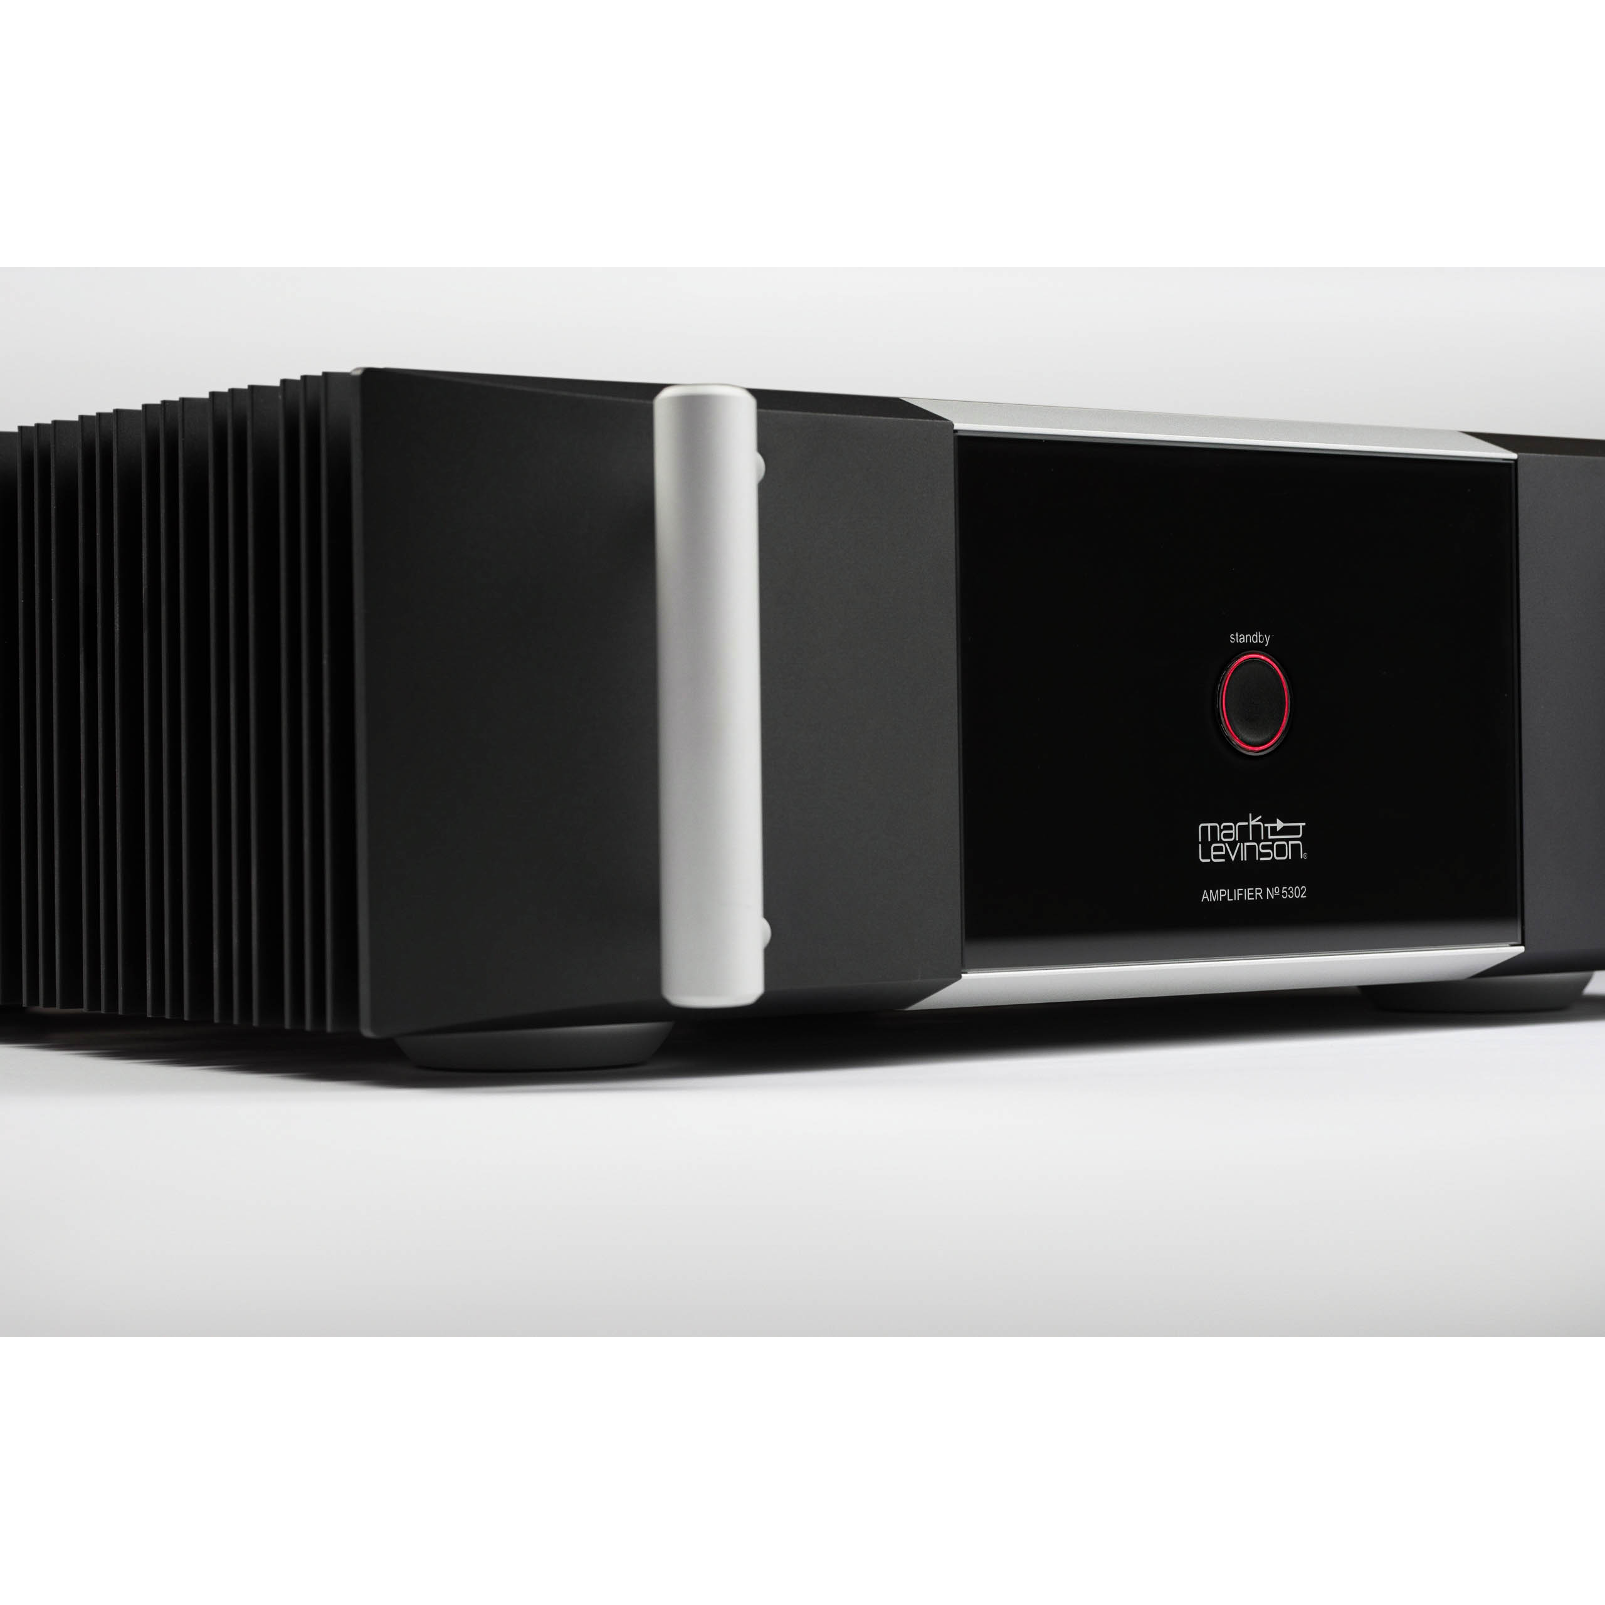 №5302 - Black - Fully-discrete, direct-coupled, dual-monaural, Class AB amplifier - Right